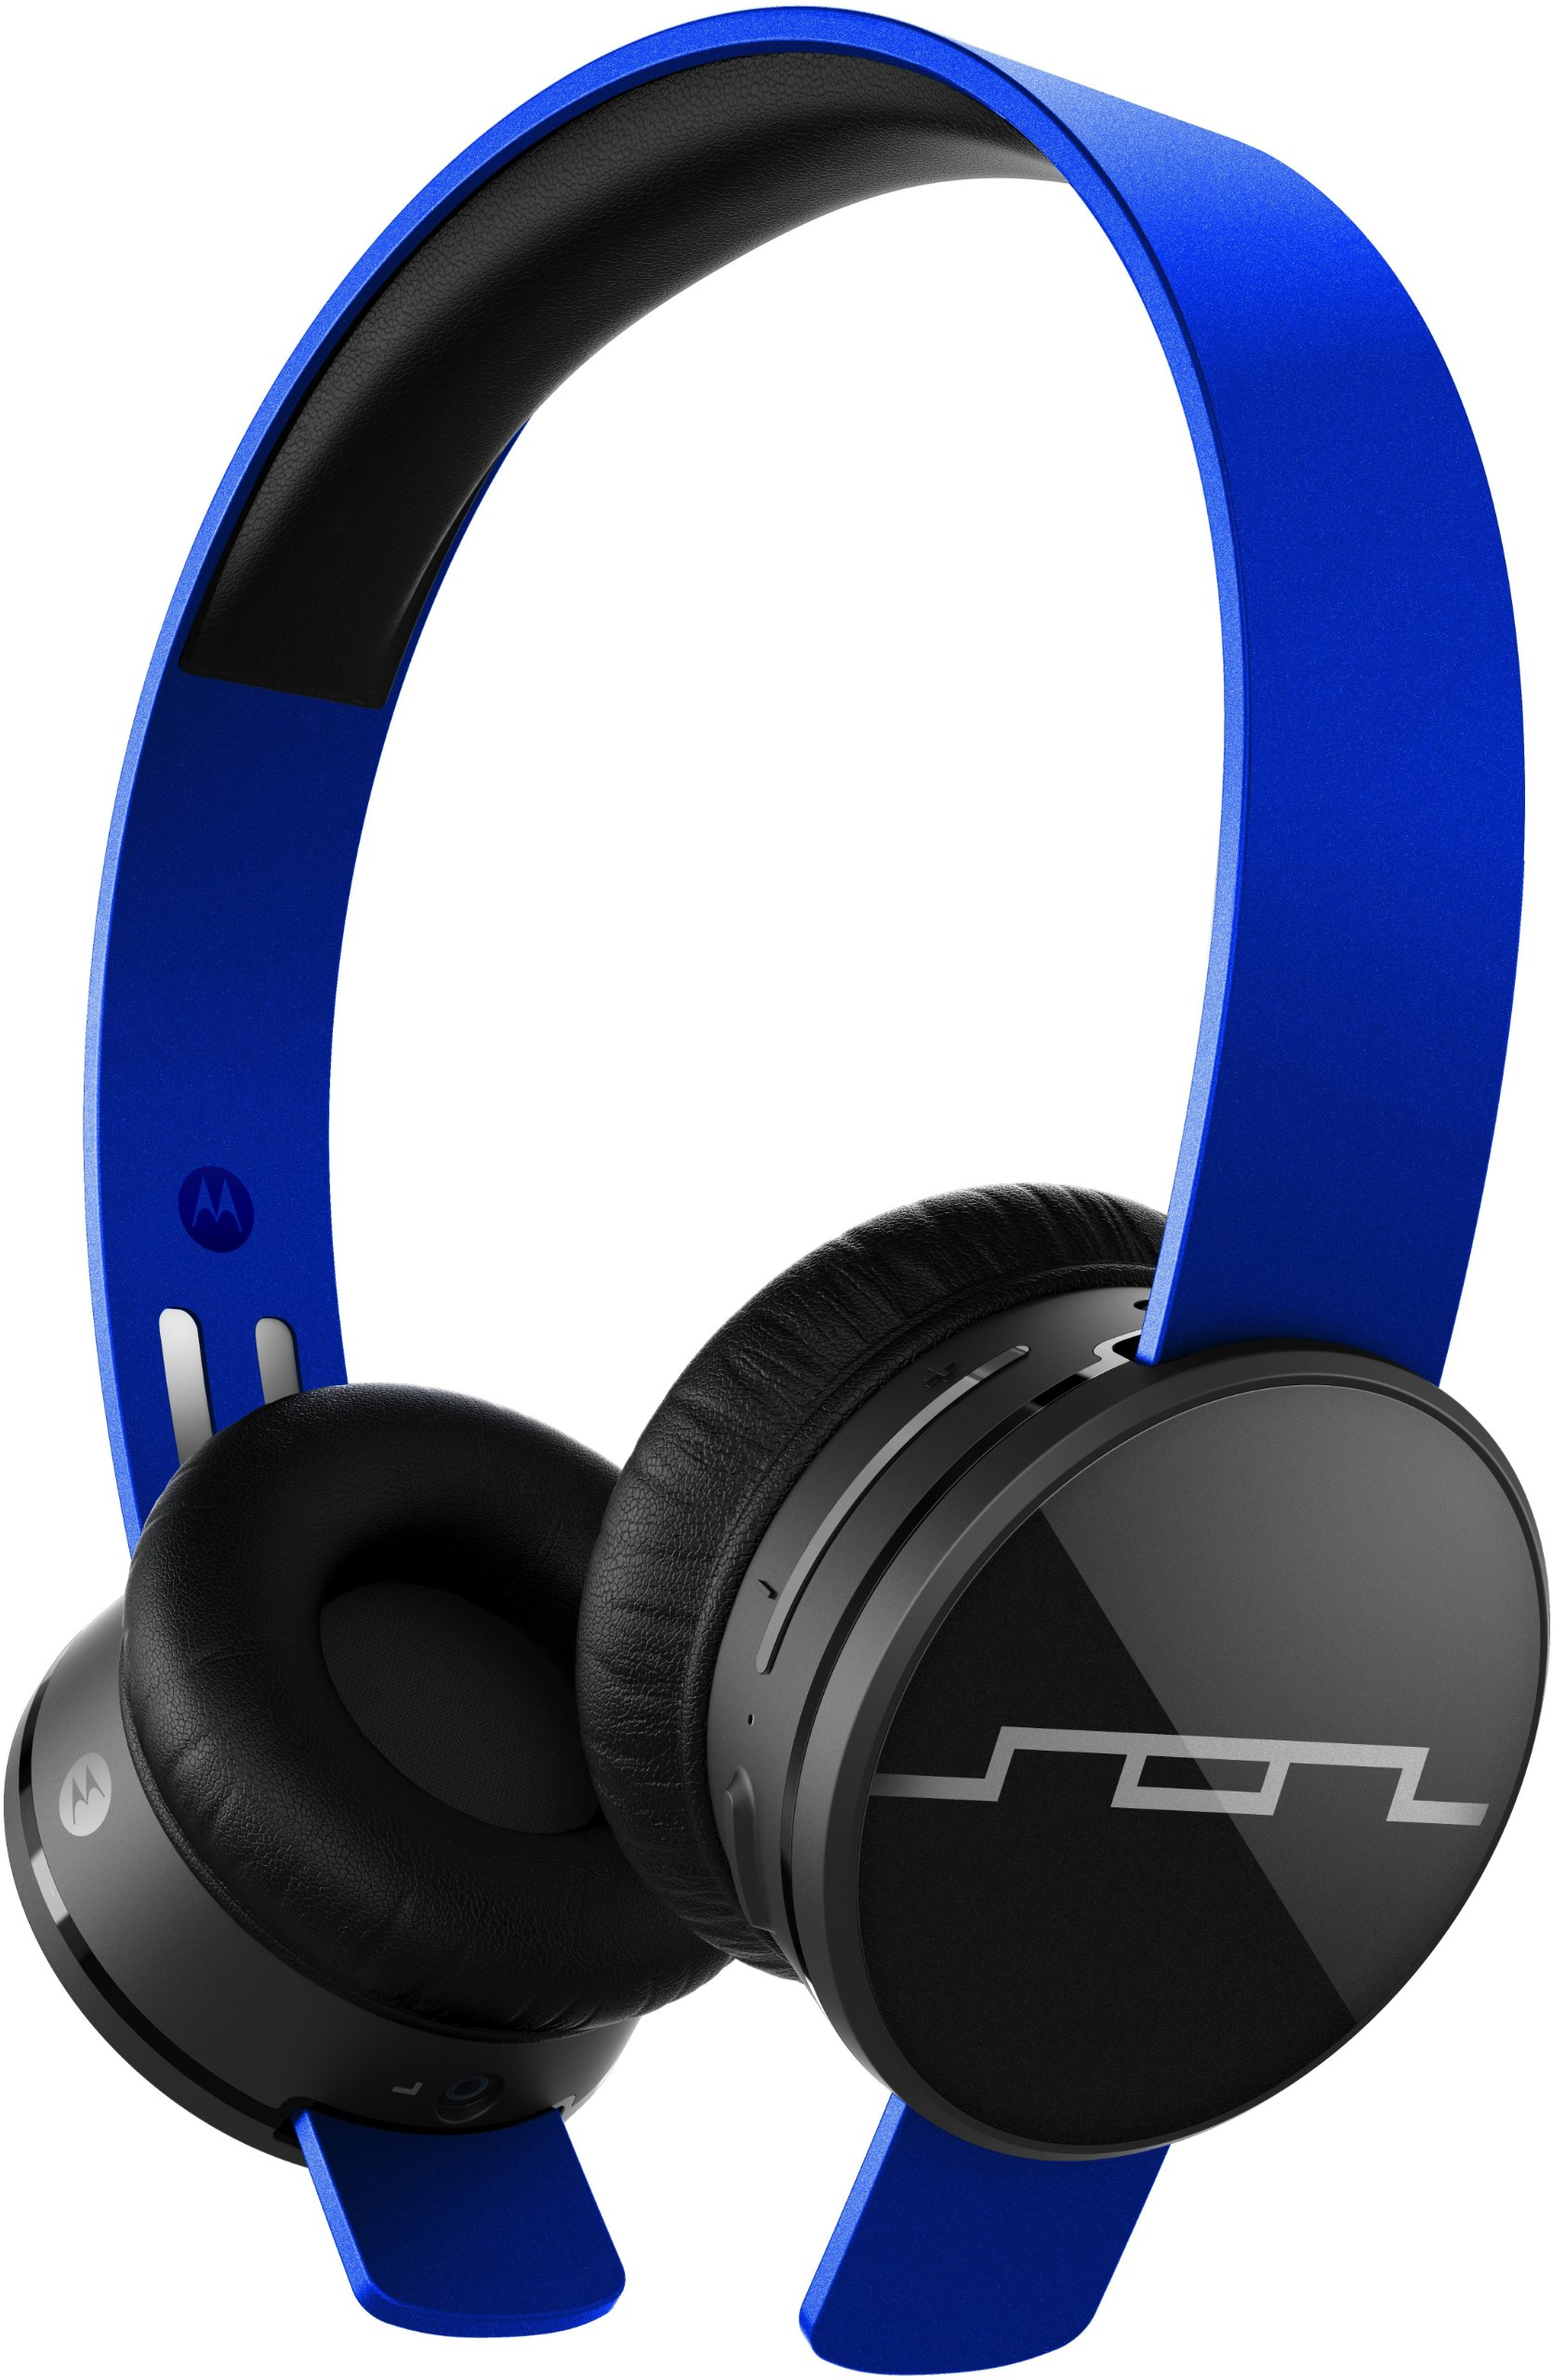 SOL REPUBLIC 1430-06 Tracks Air Wireless On-Ear Headphones with A2 Sound Engine, Electro Blue by SOL REPUBLIC